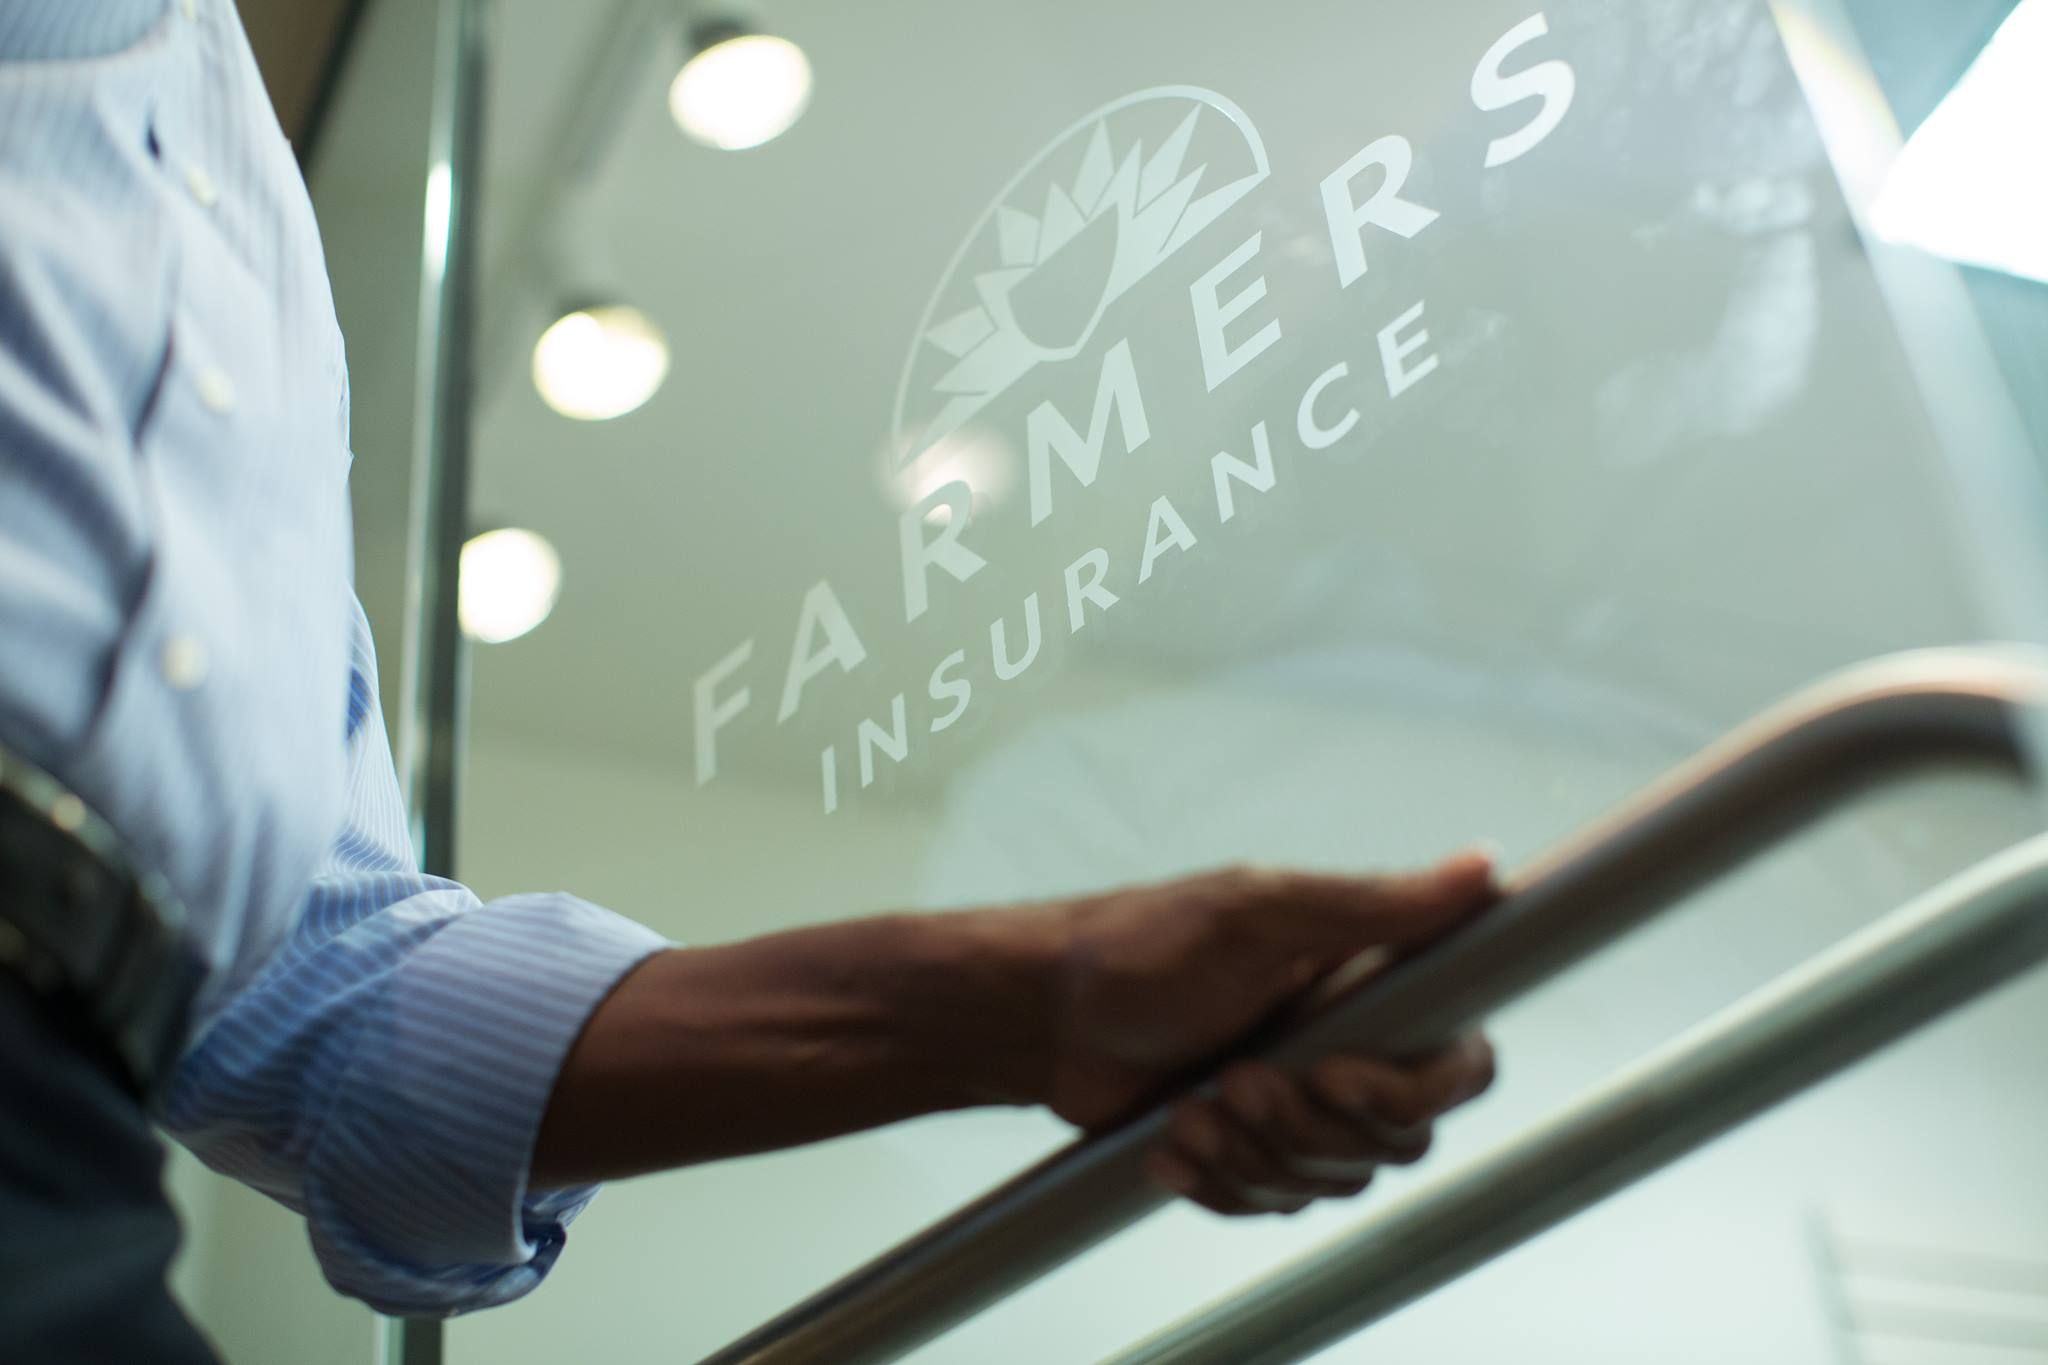 As a Farmers agent, I have seen a lot, so I can discuss